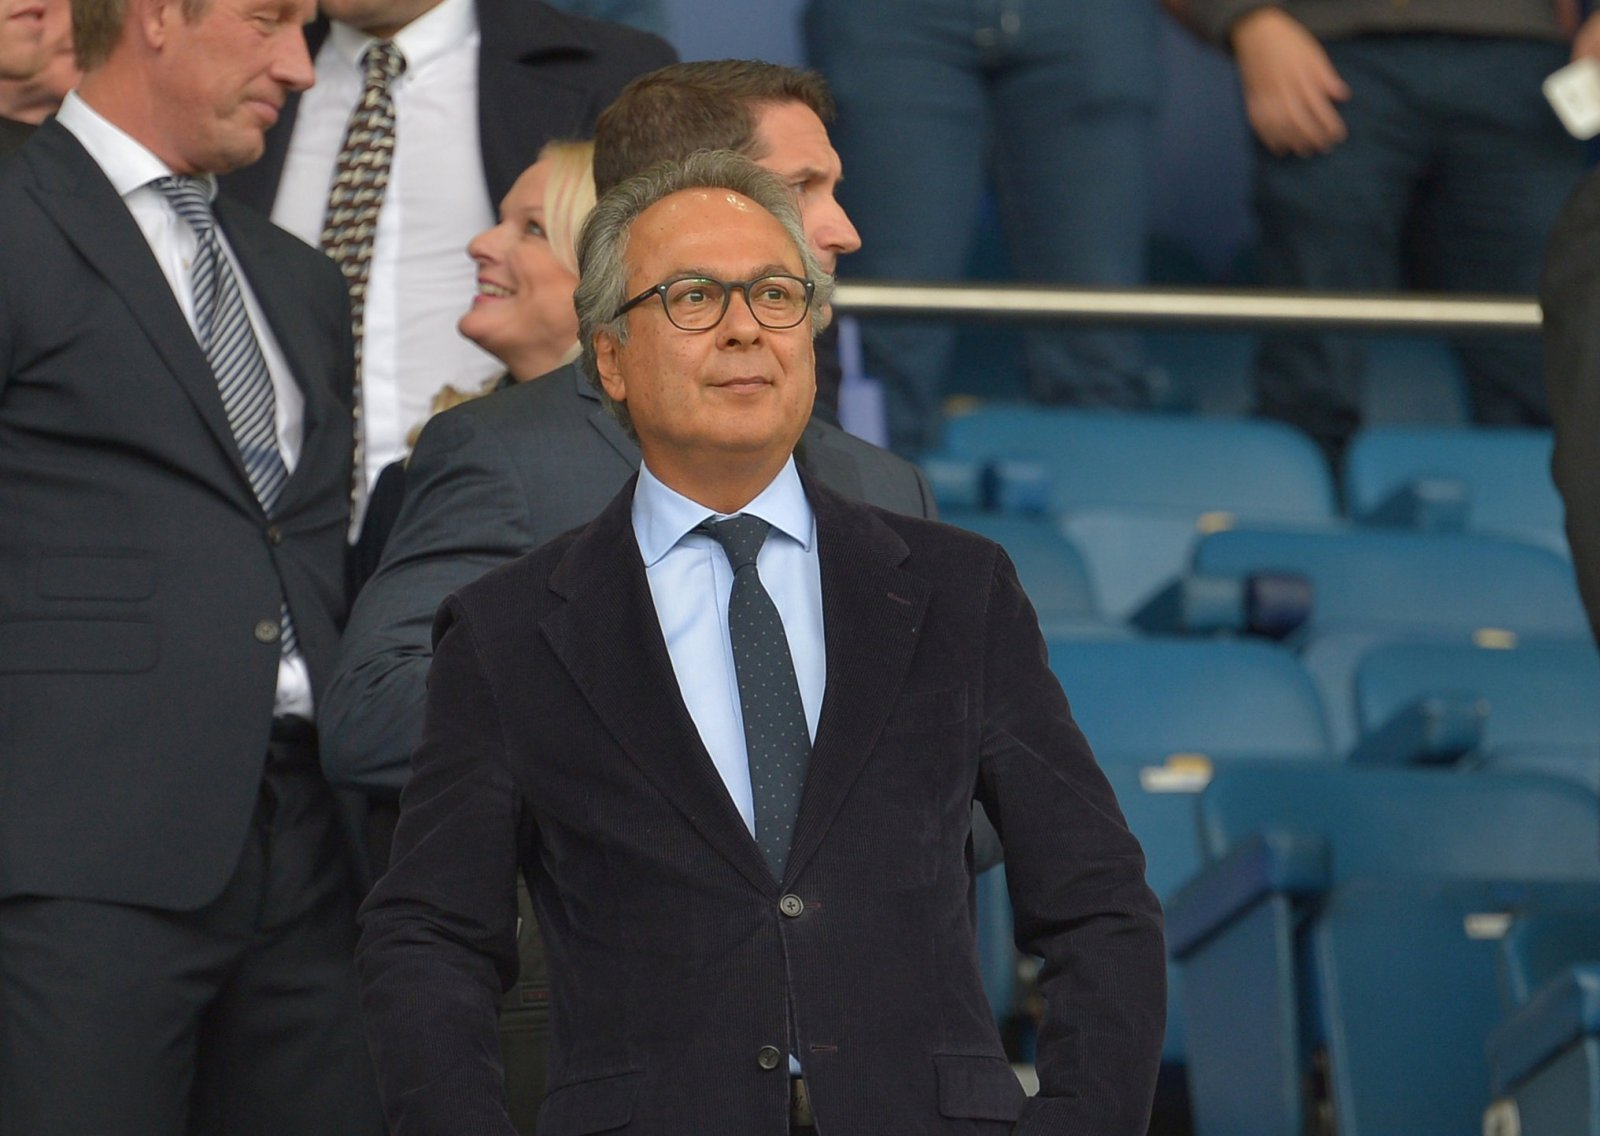 Opinion: Farhad Moshiri's Everton ambitions will ensure Marcel Brands has one of the toughest jobs in English football